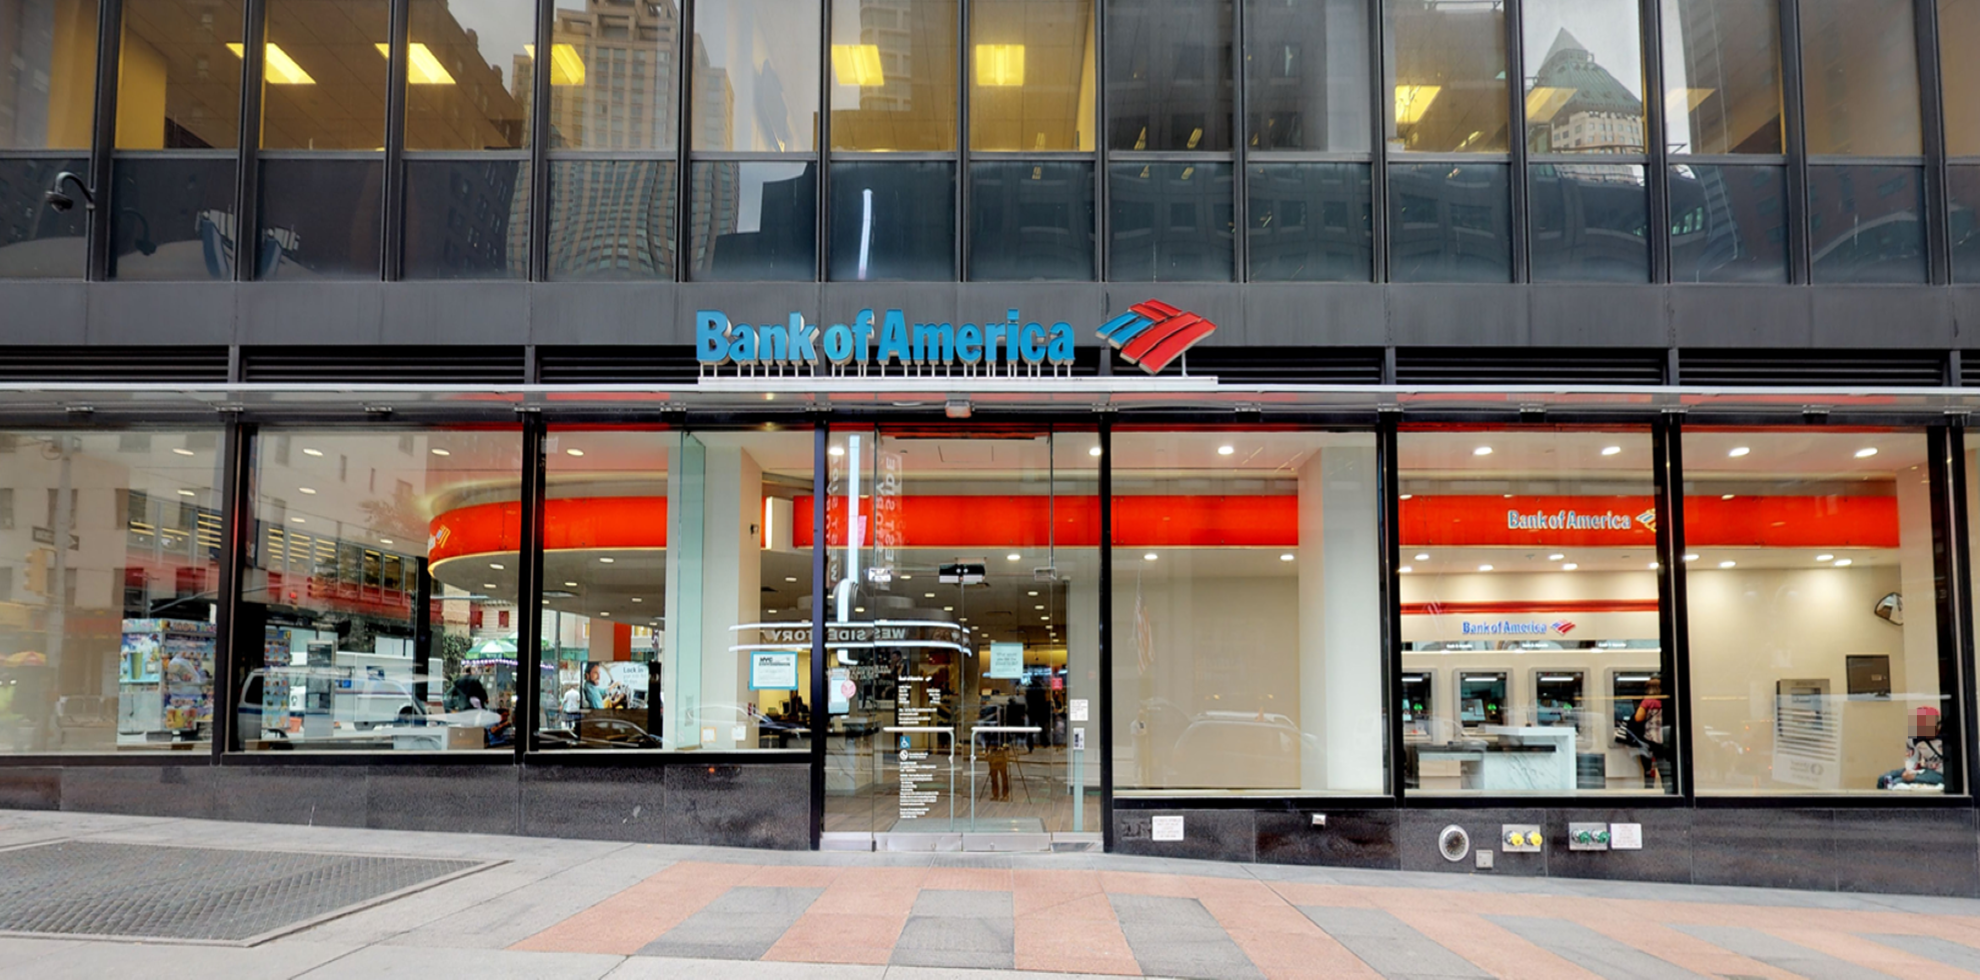 Bank of America financial center with walk-up ATM | 1680 Broadway, New York, NY 10019